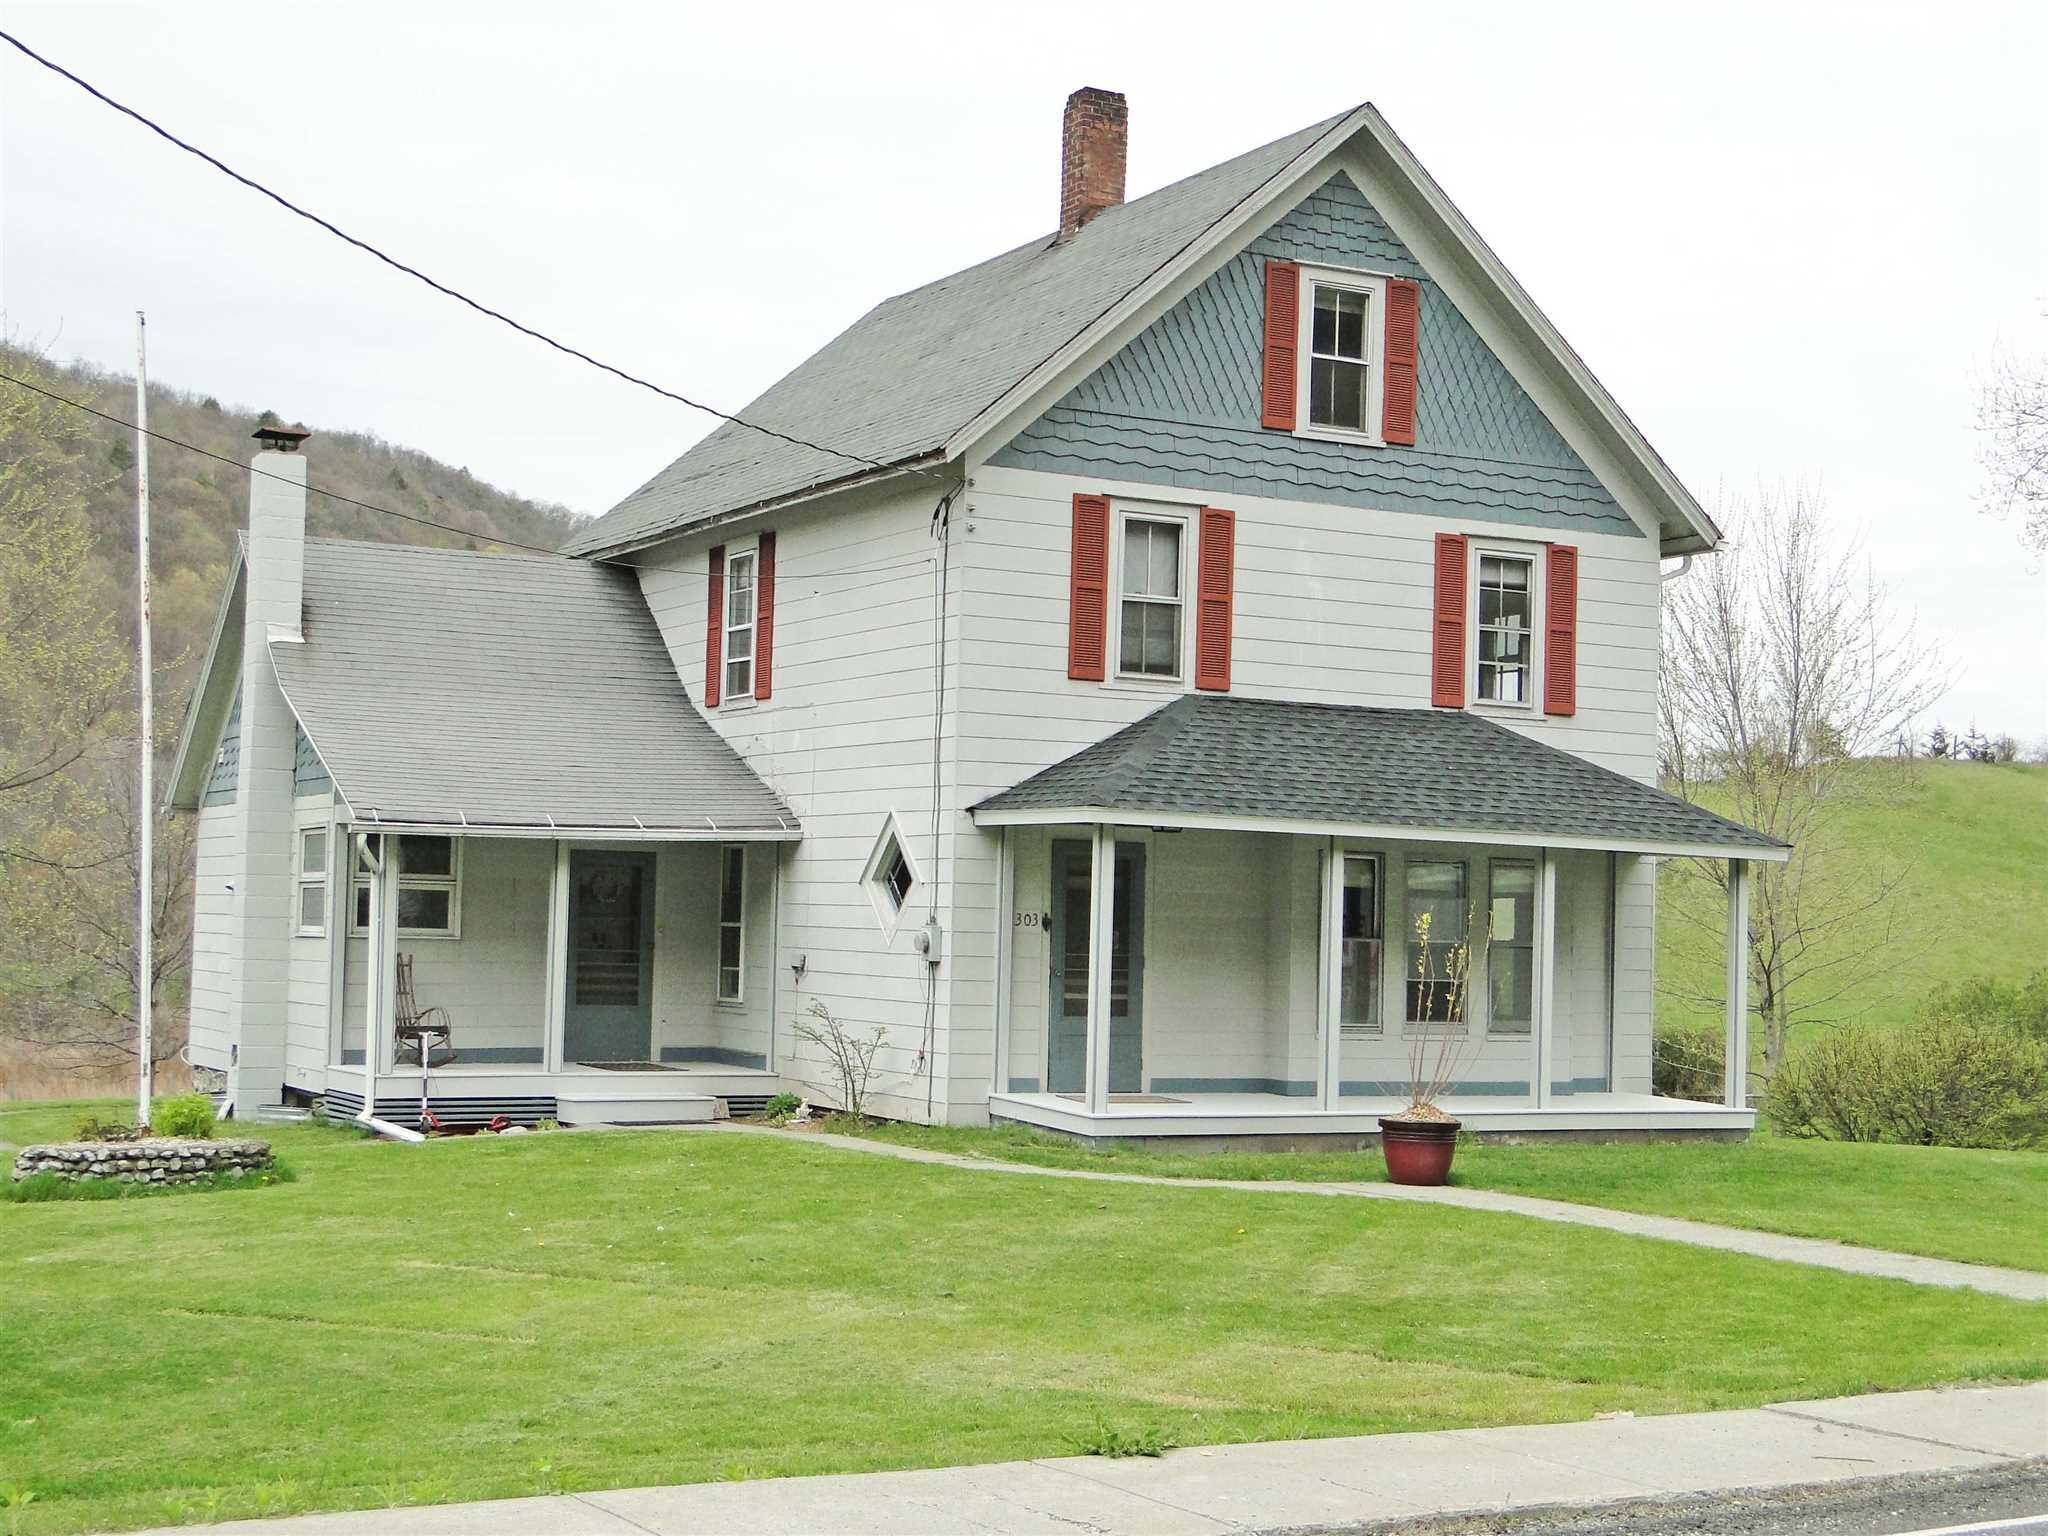 Single Family Home for Sale at 303 OLD ROUTE 22 303 OLD ROUTE 22 Amenia, New York 12592 United States